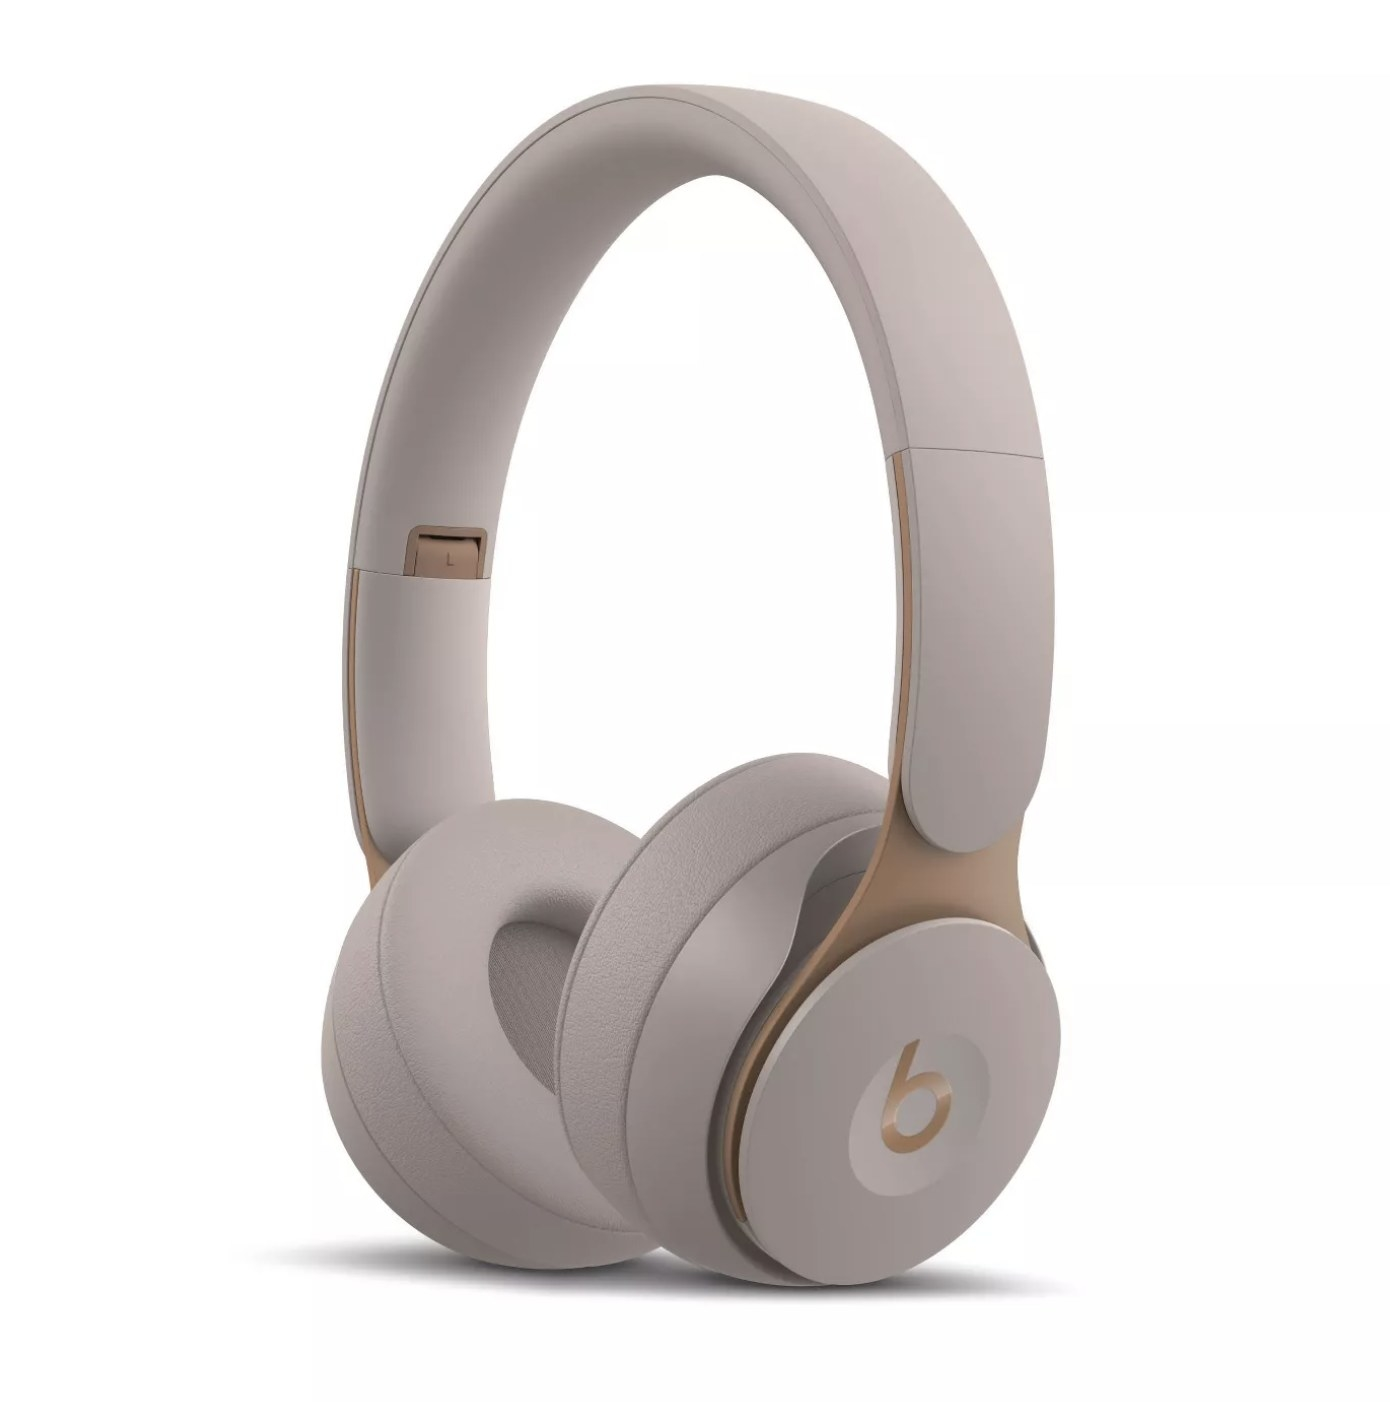 The headphones in a mauve